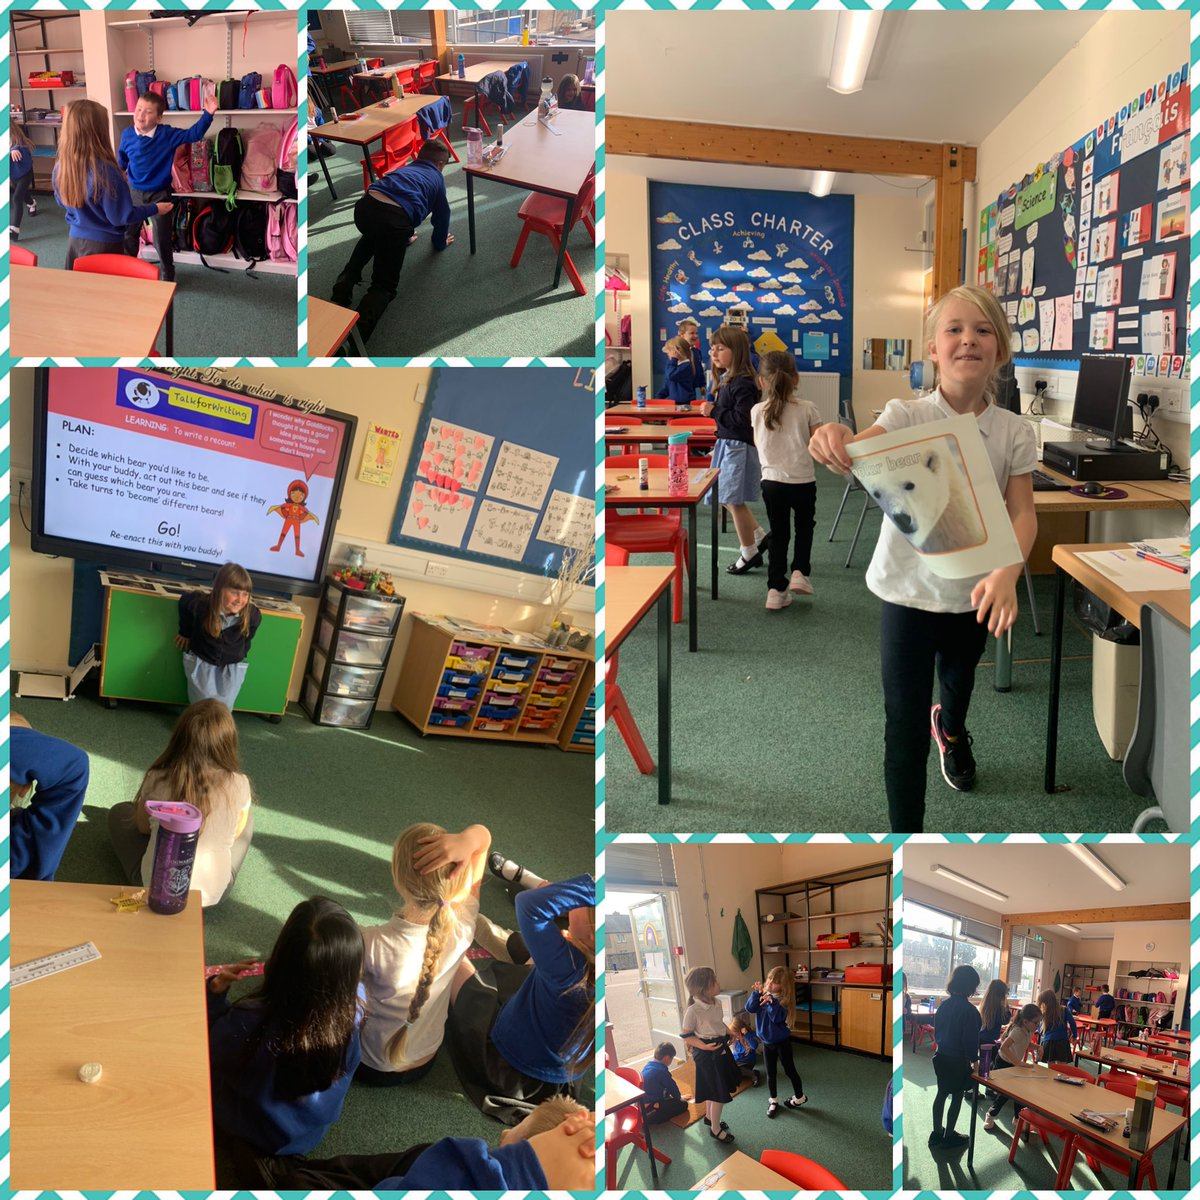 P3 found bears roaming their classroom on Monday,which inspired their #talkforwriting factual leaflet and their enthusiasm for ICT research.They really enjoyed learning and making their worry dolls too which is giving comfort to them #eastendisproud #primary3 #youvegotafriendinme https://t.co/dtCD9XIVeE